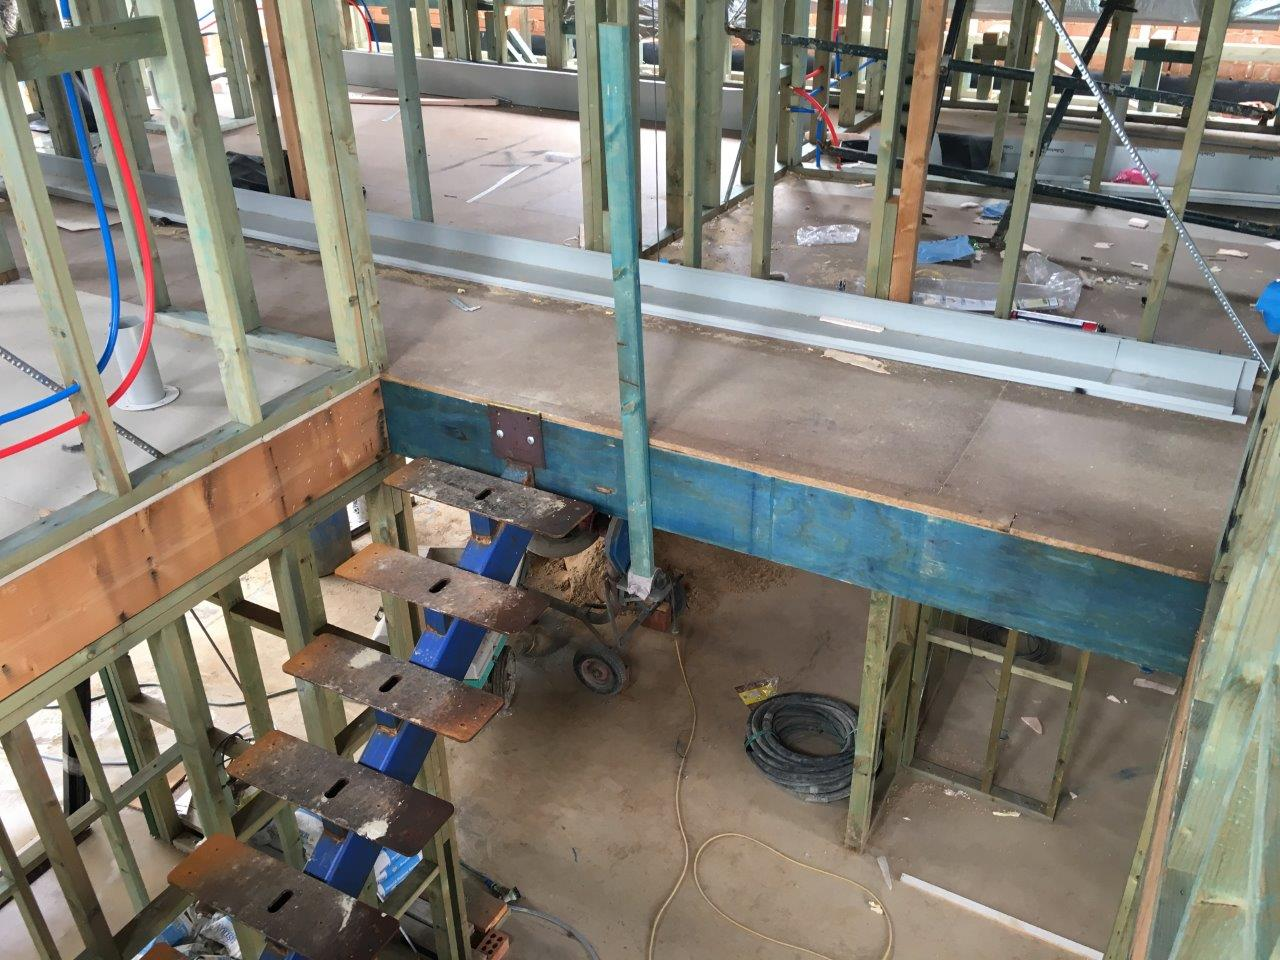 Image: View of the stair void and access stairs.